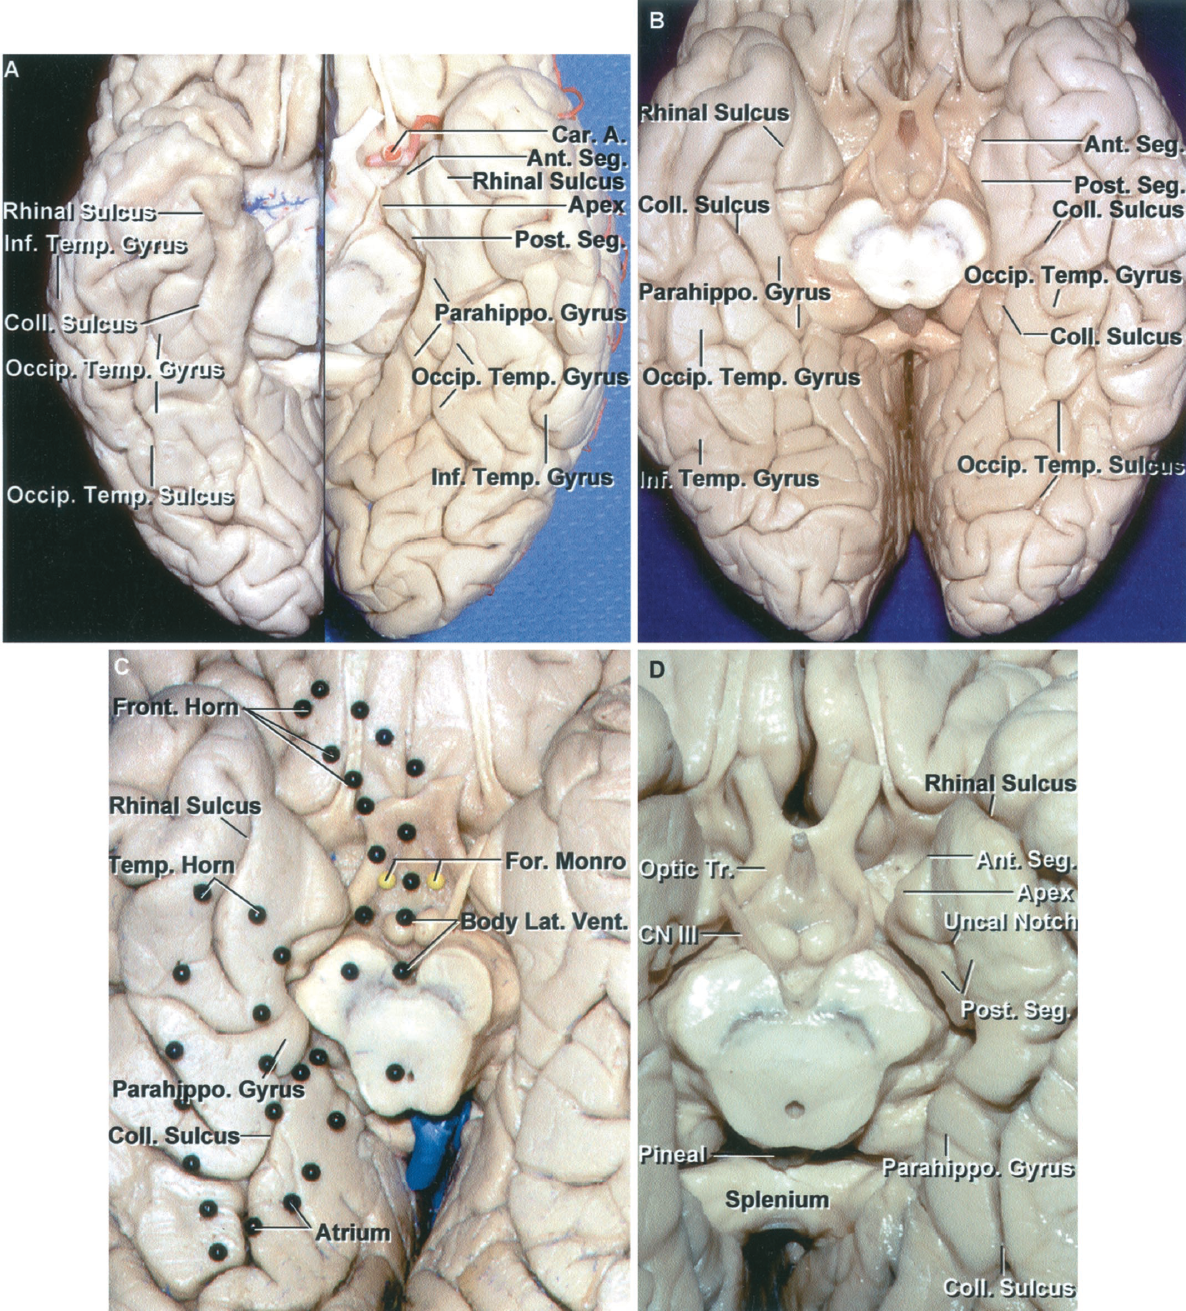 Figure 1.9 A-D. A, basal surface of the temporal and occipital lobes from two different brains. The collateral sulcus separates the parahippocampal and occipitotemporal gyri and extends backward onto the occipital lobe. The parahippocampal gyrus is broken up into several segments on both hemispheres by sulci crossing it from medial to lateral. The occipitotemporal gyri that form the middle strip along the long axis of the basal surfaces are discontinuous, as are the inferior temporal gyri that fold from the convexity around the lower margin of the hemispheres. The rhinal sulci that extend along the lateral margin of the uncus are in continuity with the collateral sulci. B, another cerebrum. The rhinal sulcus on both sides extends along the lateral uncal margin, but is not continuous with the collateral sulcus as in A. The parahippocampal, occipitotemporal, and the inferior temporal gyri are broken up into multiple segments. C, enlarged view. Dark pins outline the position of the lateral ventricle above the basal surface. The frontal horn is located above the posteromedial part of the basal surface of the frontal lobe. The body of the ventricle is located above the midbrain and thalamus. The temporal horn is located above the collateral sulcus and parahippocampal gyrus. There are prominences, the collateral eminence, in the floor of the temporal horn and the collateral trigone, in the floor of the atrium, that overlie the deep end of the collateral sulcus. D, basal surface of another temporal lobe. The uncus has an anterior segment that faces forward toward the carotid cistern and entrance into the sylvian cistern and a posterior segment that faces posteriorly toward the cerebral peduncle and crural cistern. The apex between the anterior and posterior segment is located lateral to the oculomotor nerve. The medial part of the parahippocampal gyrus faces the ambient cistern located between the lateral side of the midbrain and the parahippocampal gyrus. The rhinal sulcus courses along the lateral margin of the anterior part of the uncus and is continuous with the collateral sulcus. The posterior segment of the uncus is divided into an upper and lower part by the uncal notch.